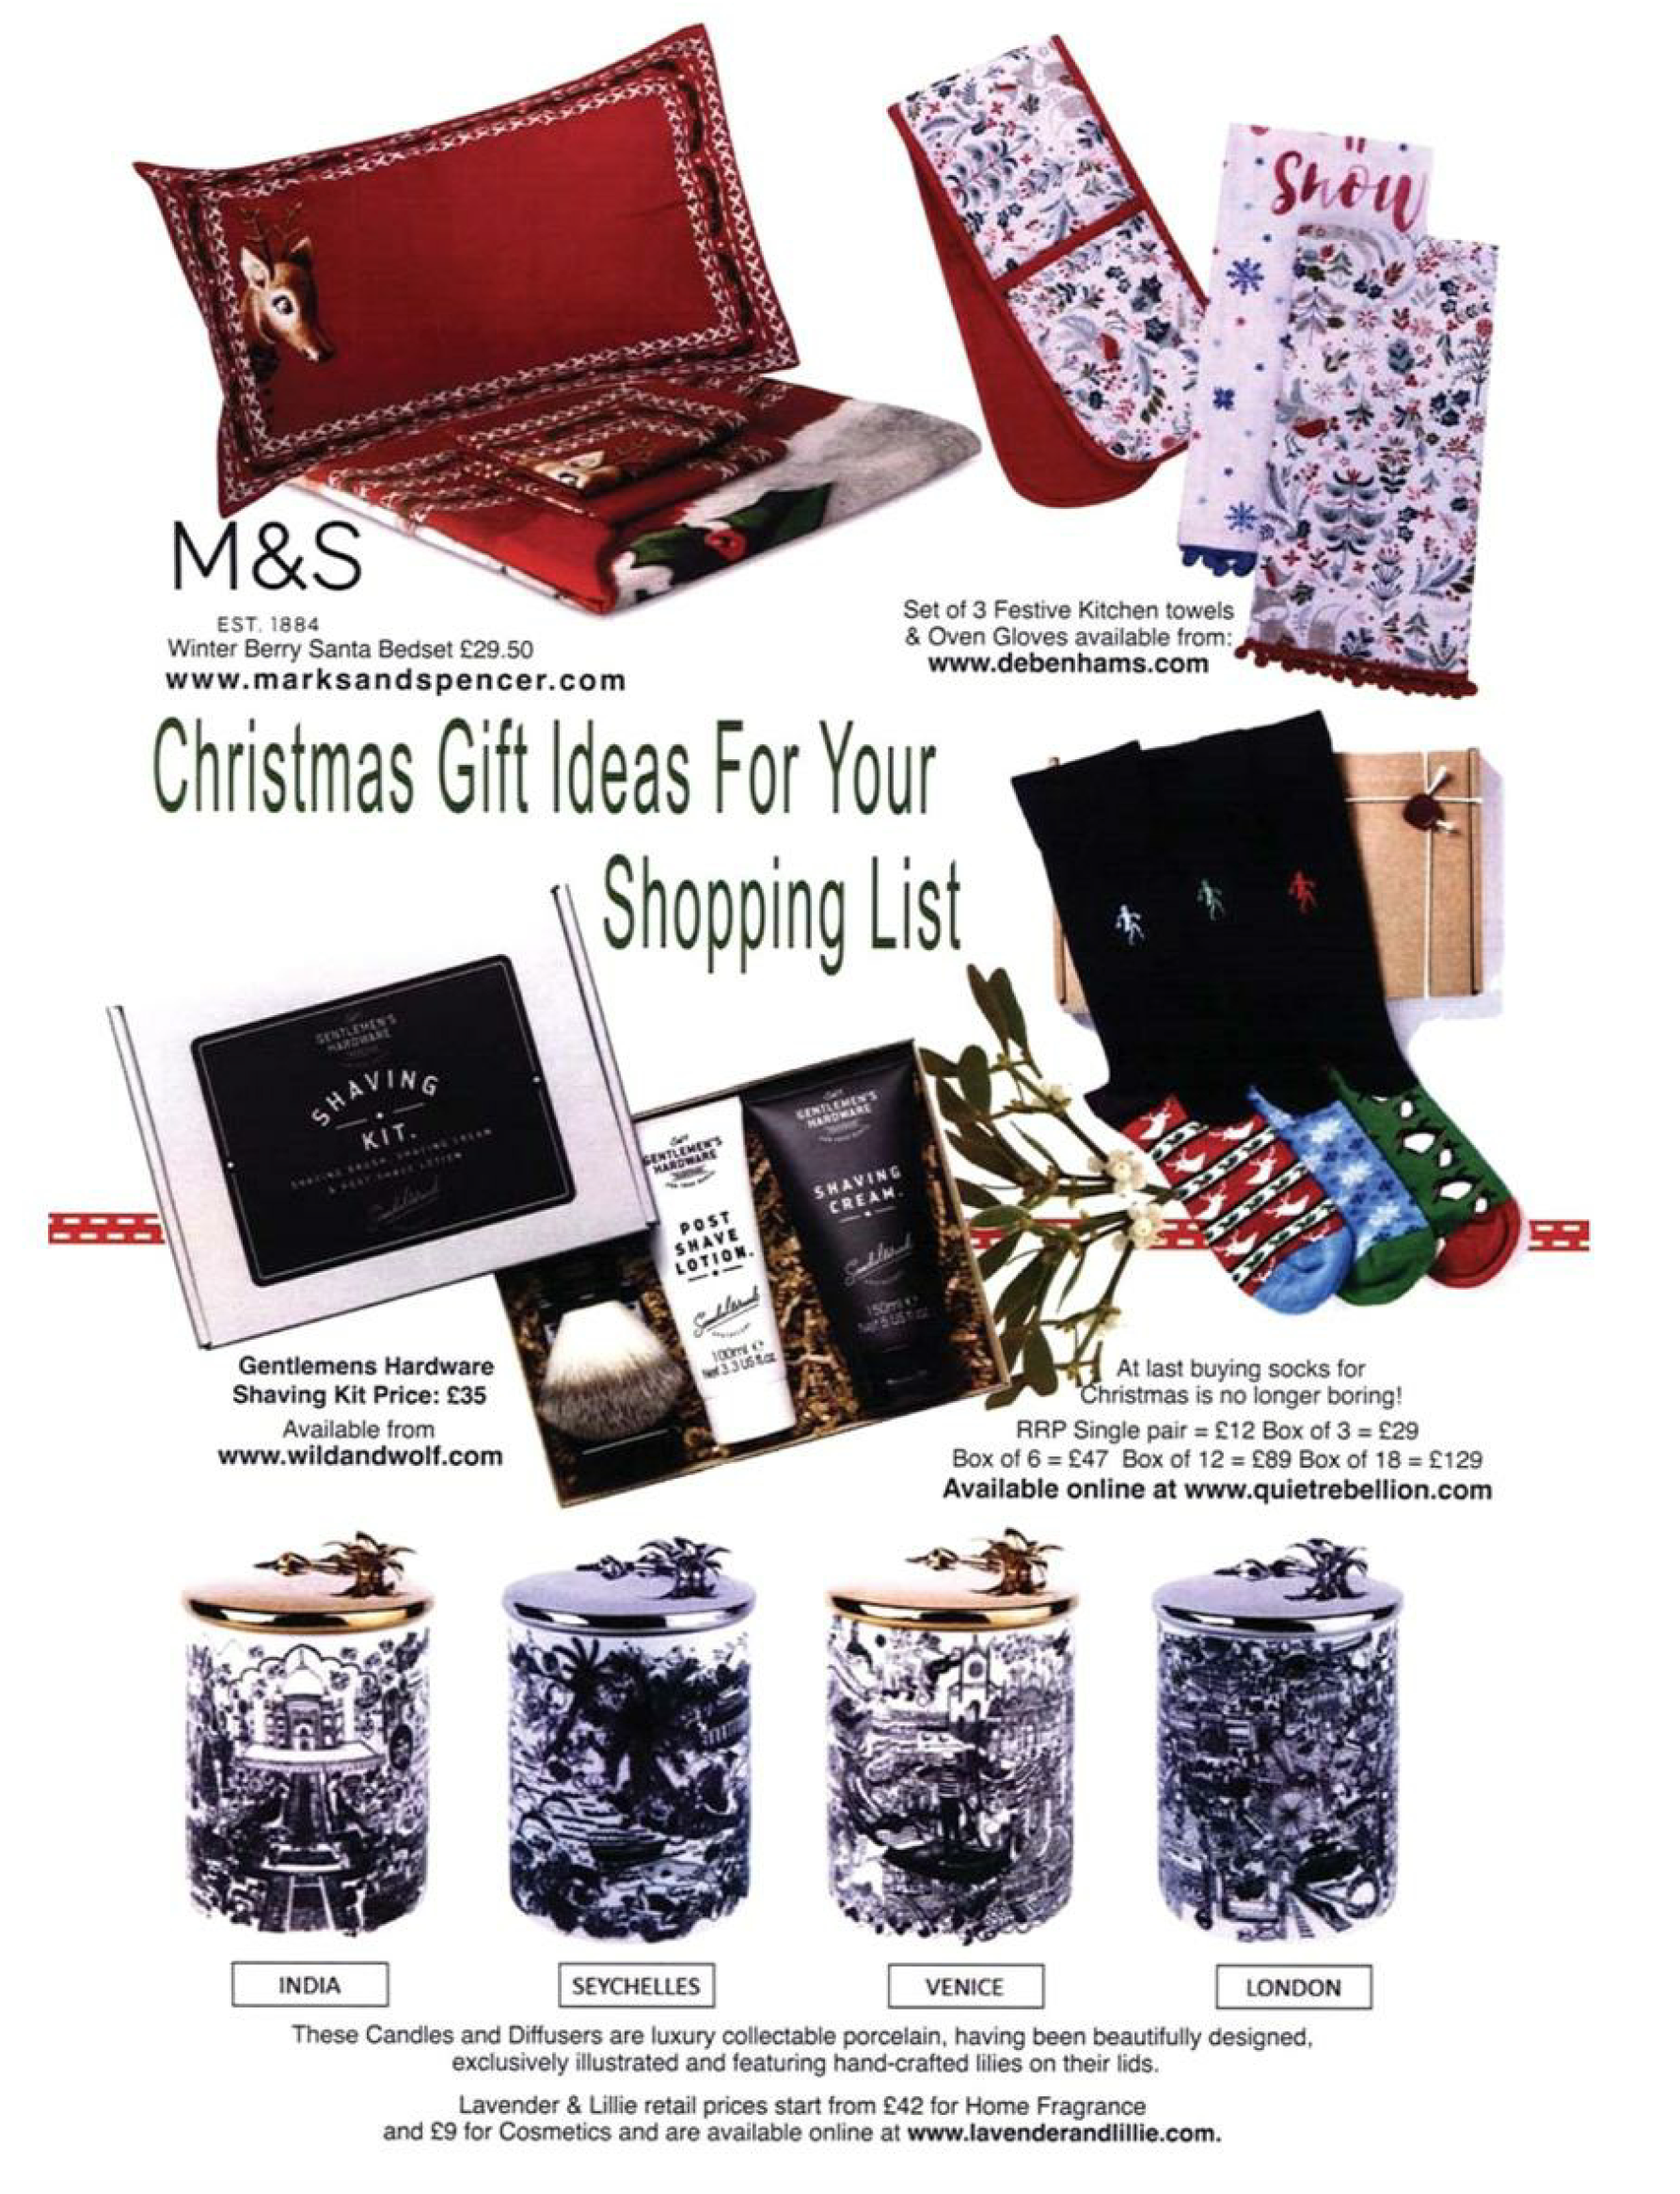 Countryside La Vie - Christmas Gift Ideas - Lavender & Lillie